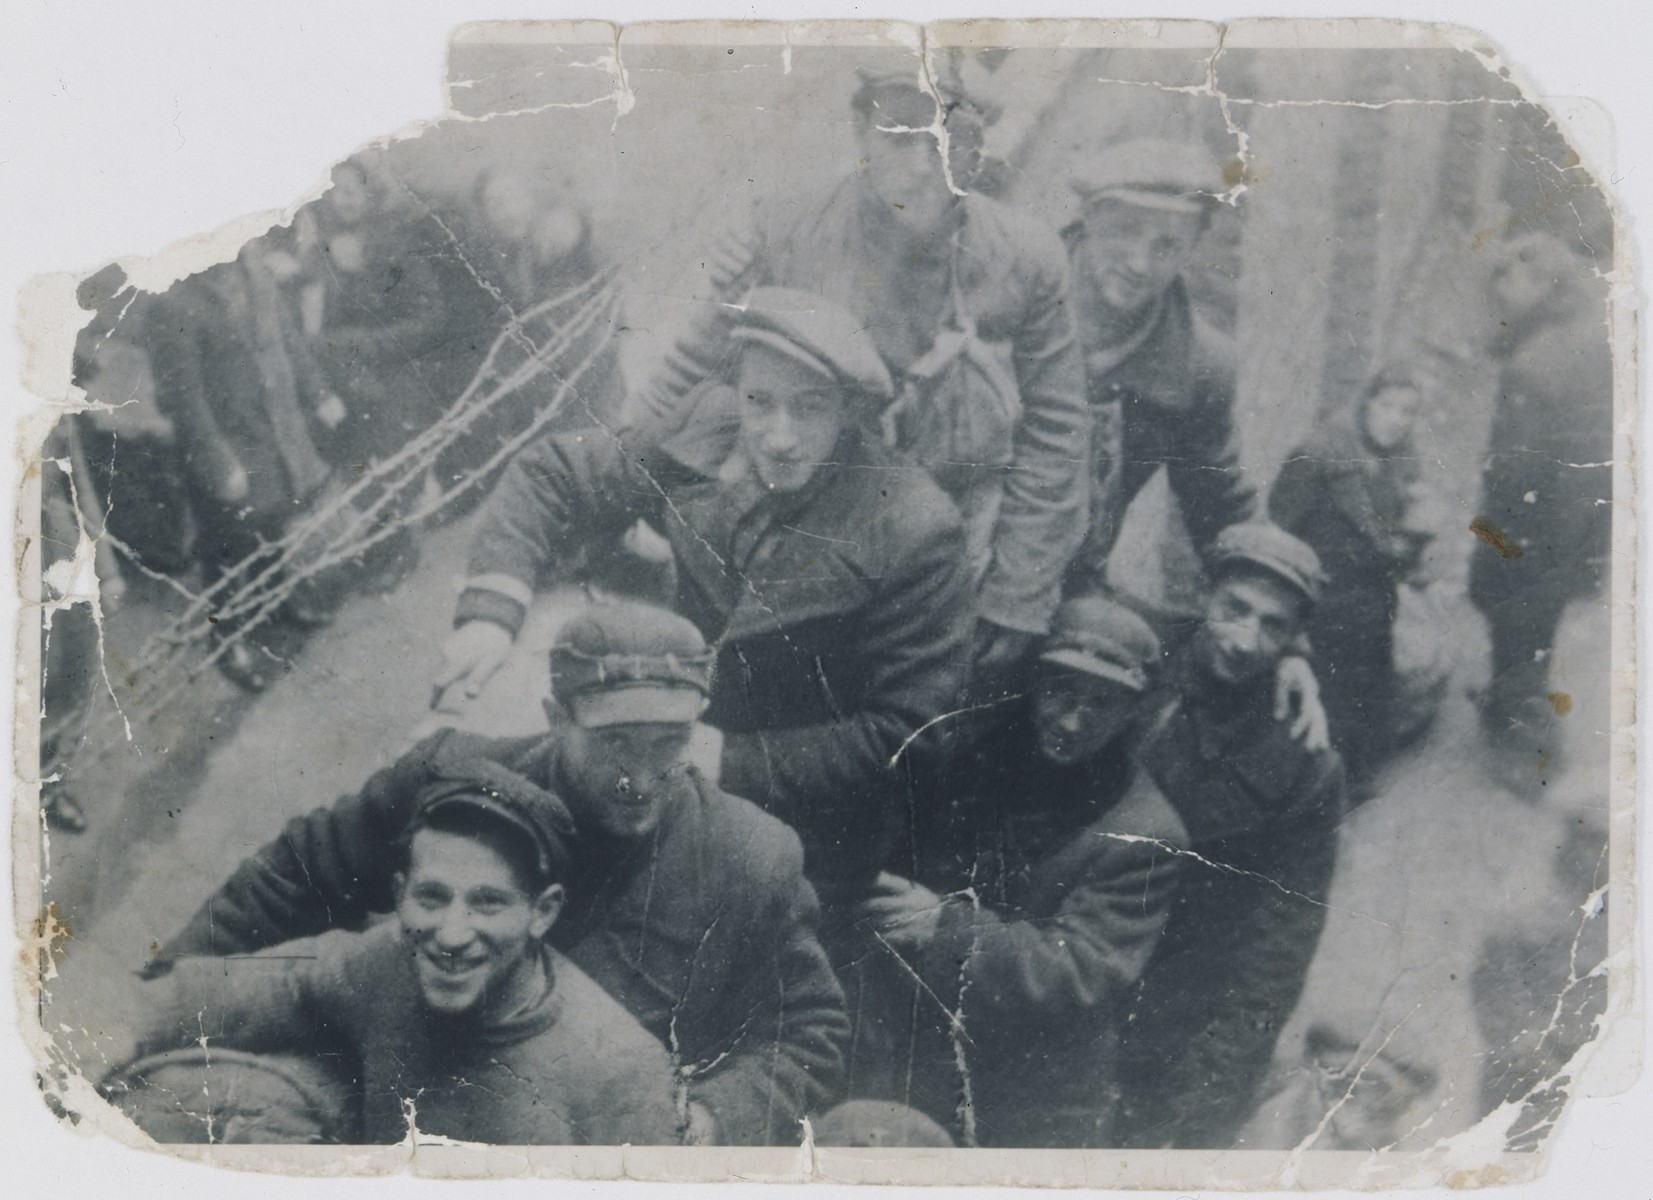 Jewish smugglers pose on a ladder at the top of the Warsaw ghetto wall near Plac Mirowski 9.  Among those pictured is Jakub Wierzbicki (third from the left).